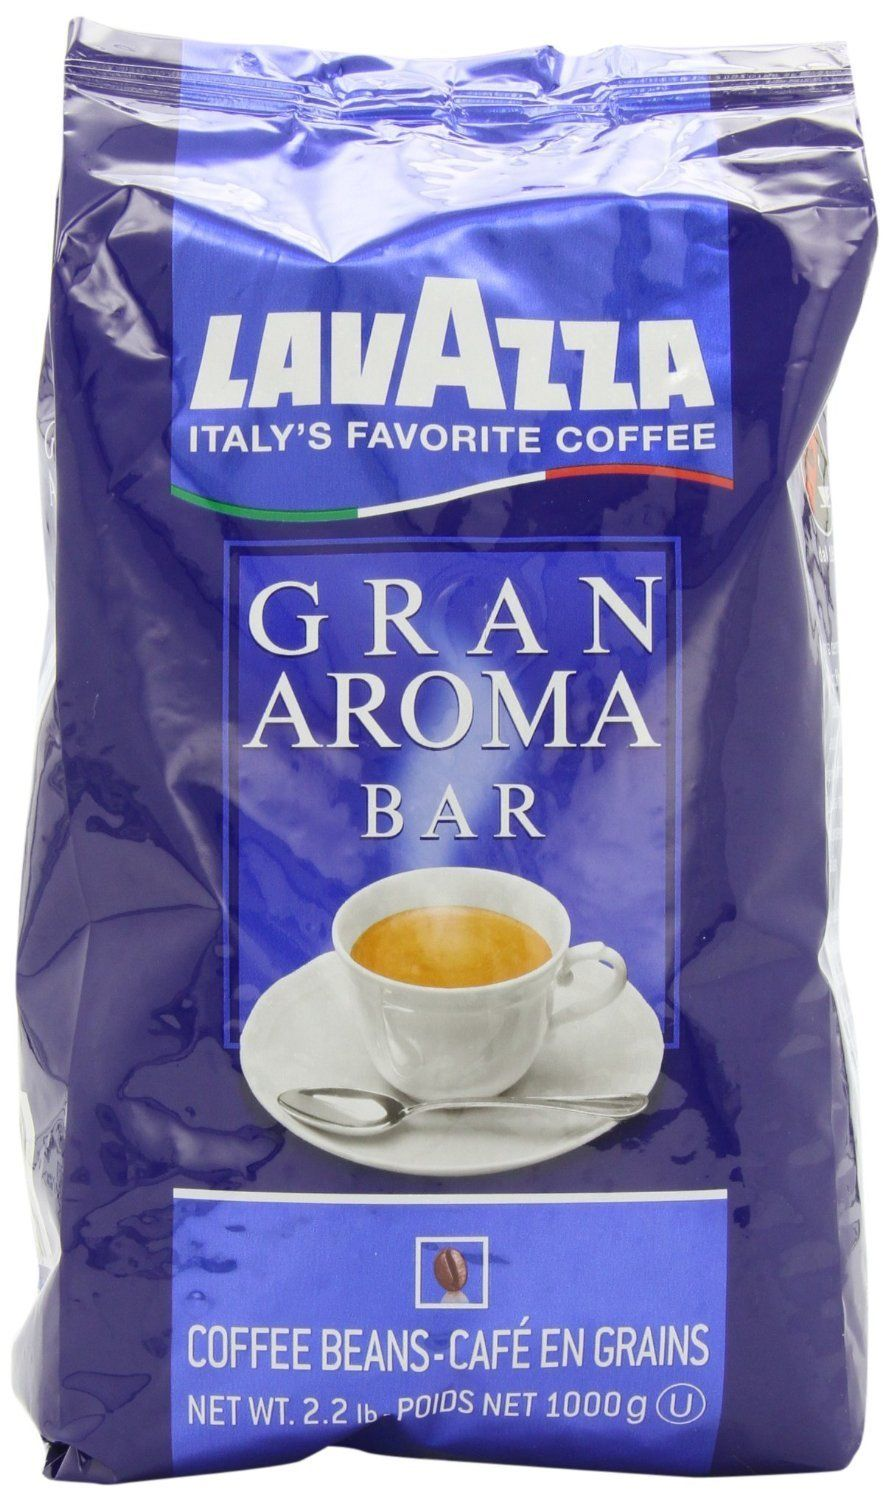 Lavazza Gran Aroma Bar Coffee Beans Value Pack (3 x 2.2 lb